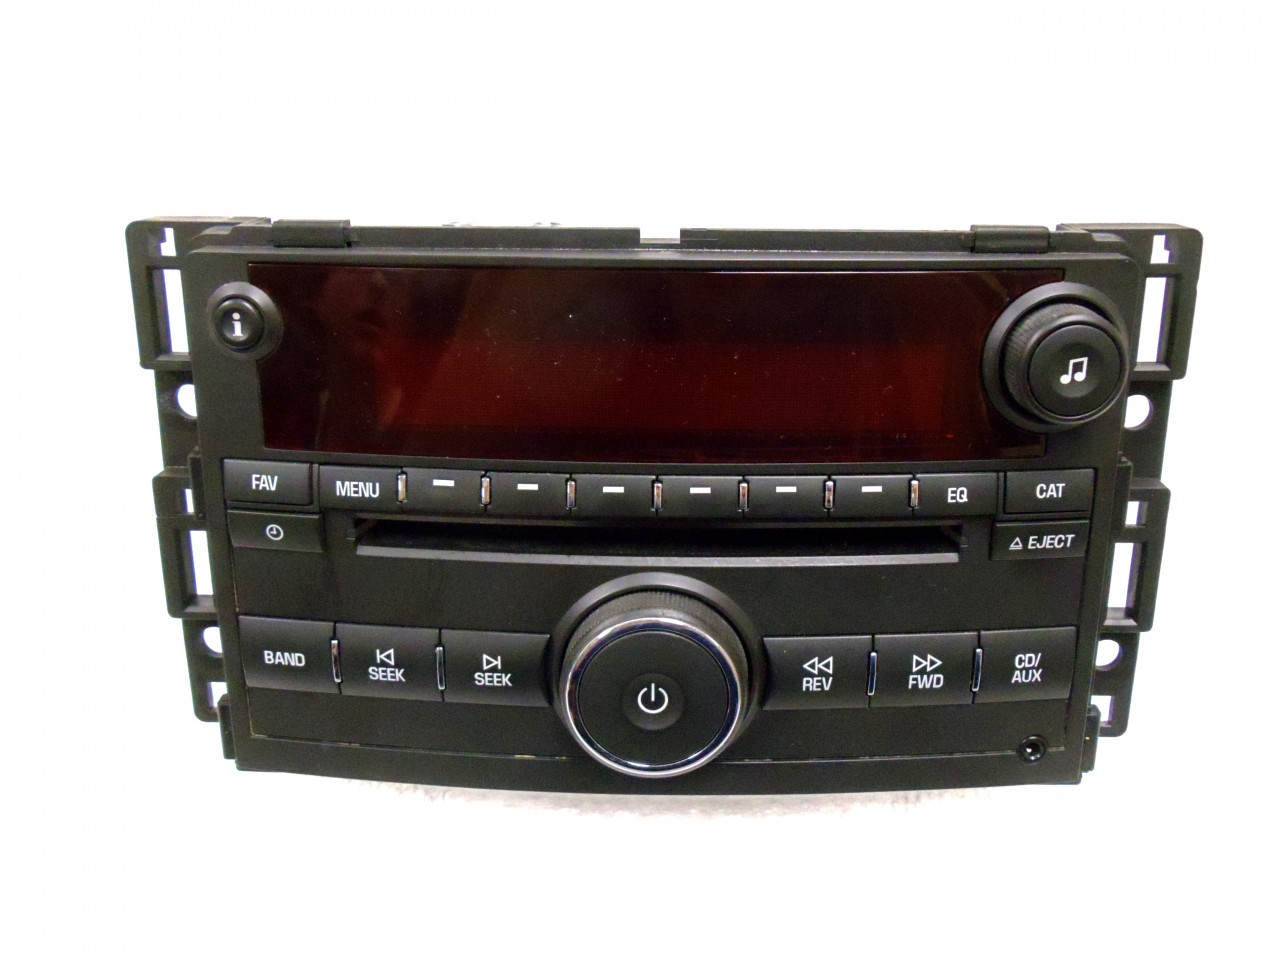 06 07 saturn ion vue radio mp3 cd player factory oem stereo. Black Bedroom Furniture Sets. Home Design Ideas